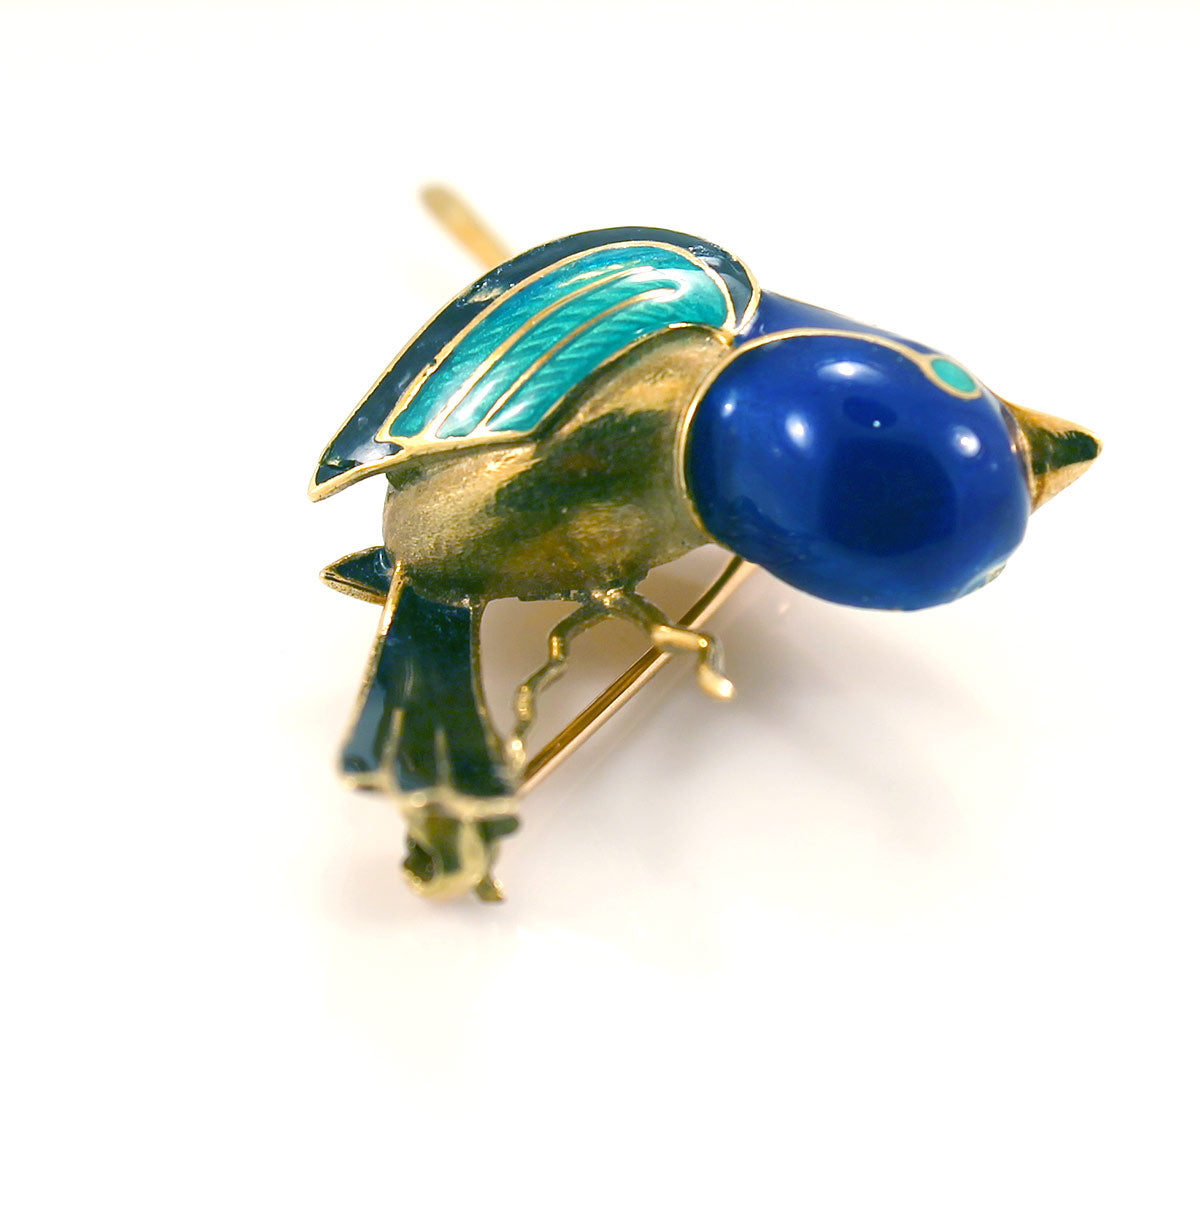 VINTAGE ESTATE 18K GOLD & ENAMELED BIRD BROOCH DESIGNED SIGNED S-MCI OFFERED BY ANTIQUE DIGGER